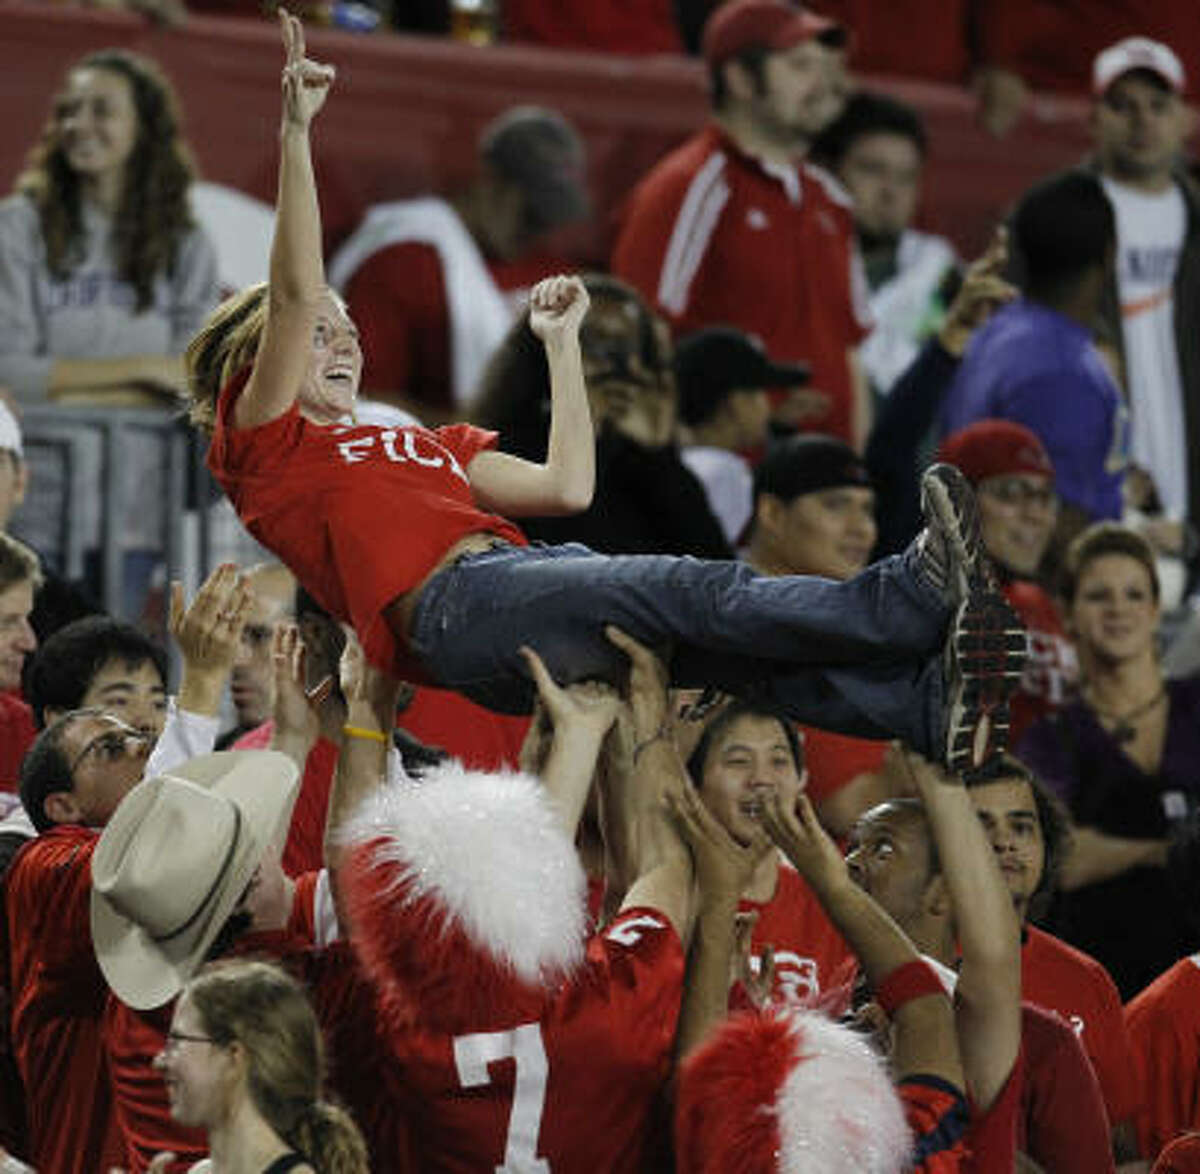 Another shot of UH fans celebrating a first-half touchdown.